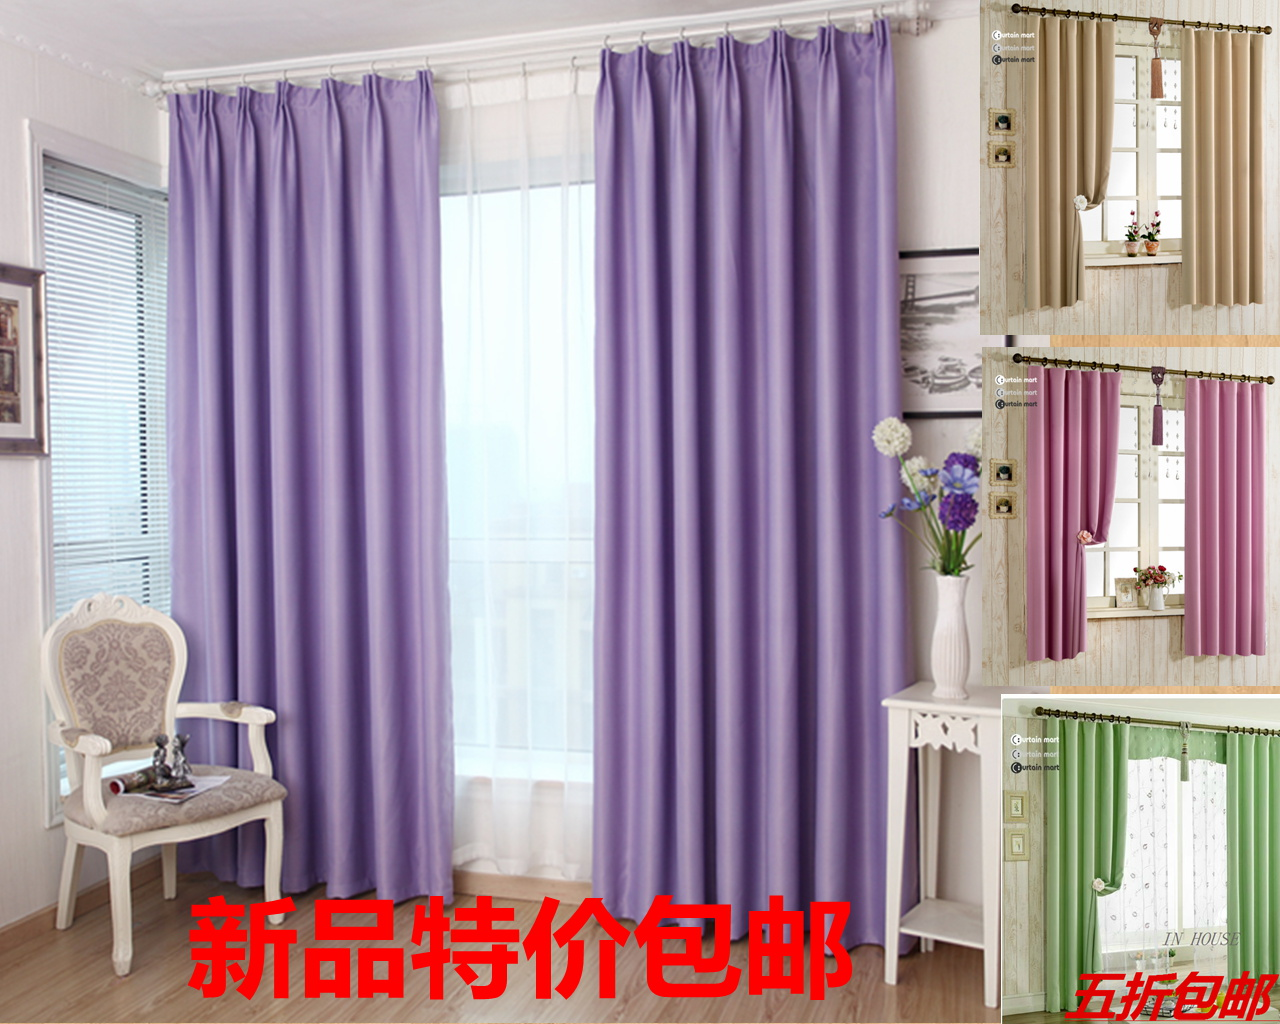 purple curtains for living room. Black Bedroom Furniture Sets. Home Design Ideas